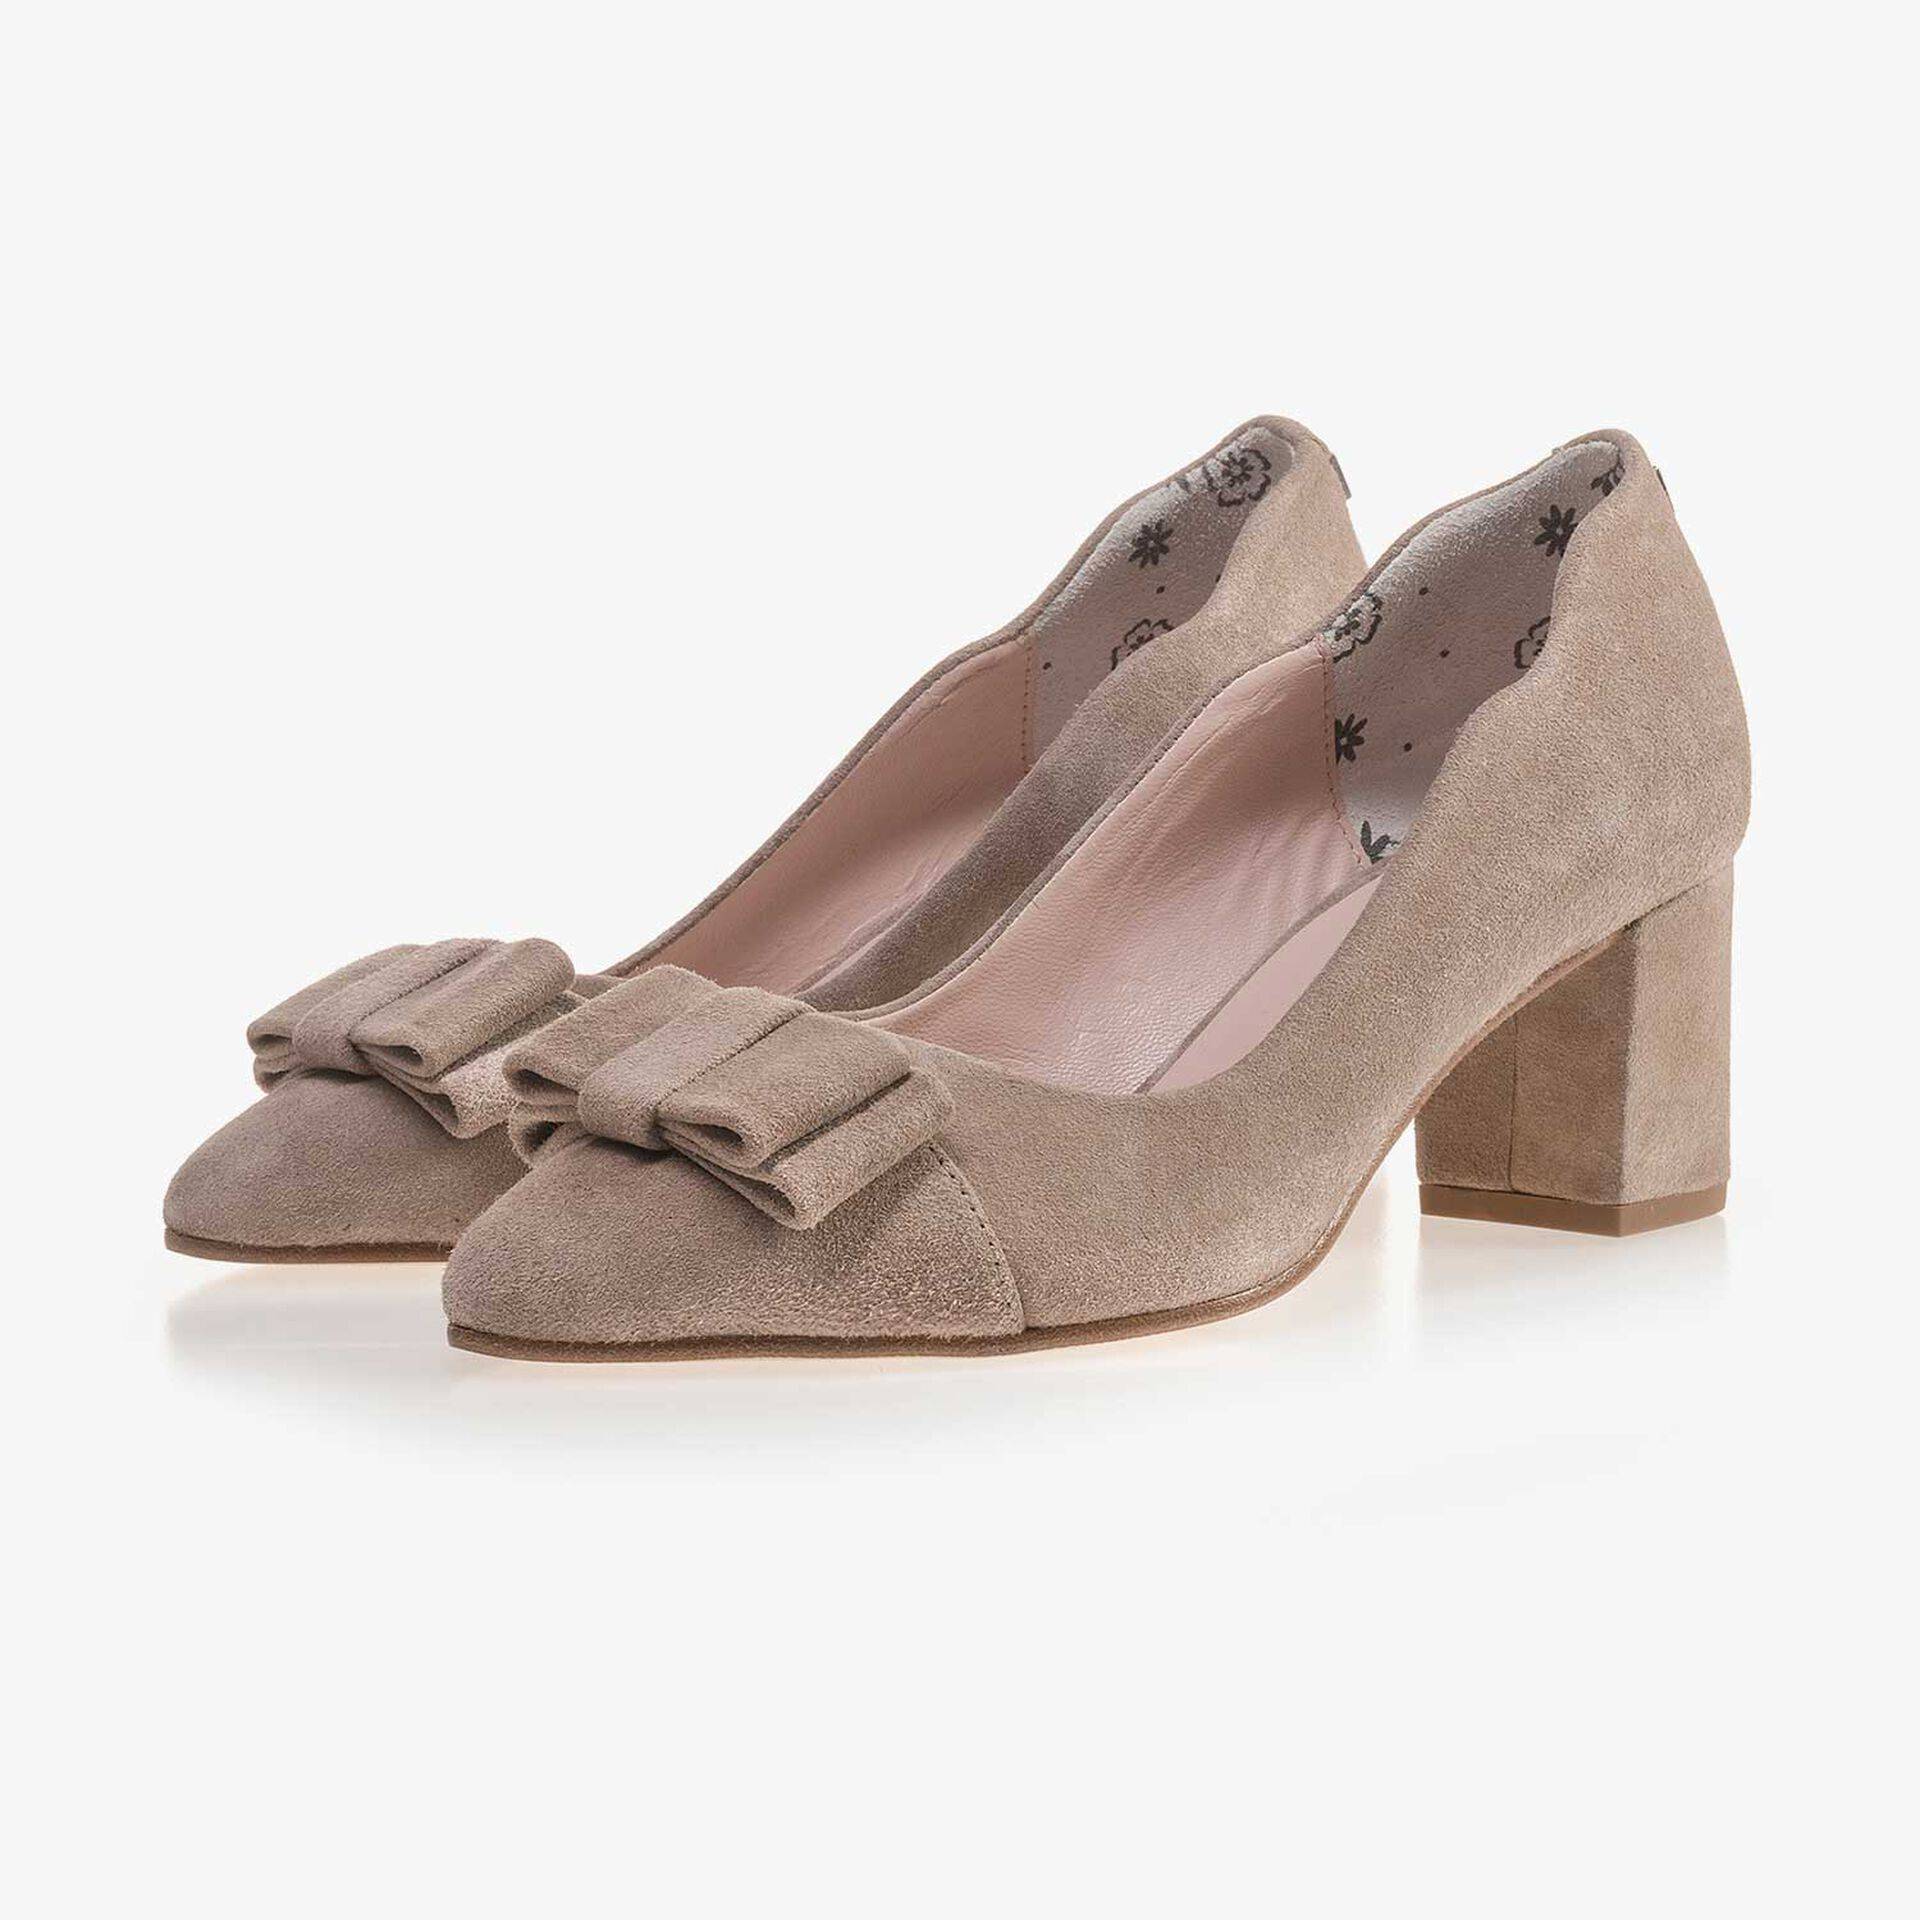 Taupe-coloured calf's suede leather bow pumps